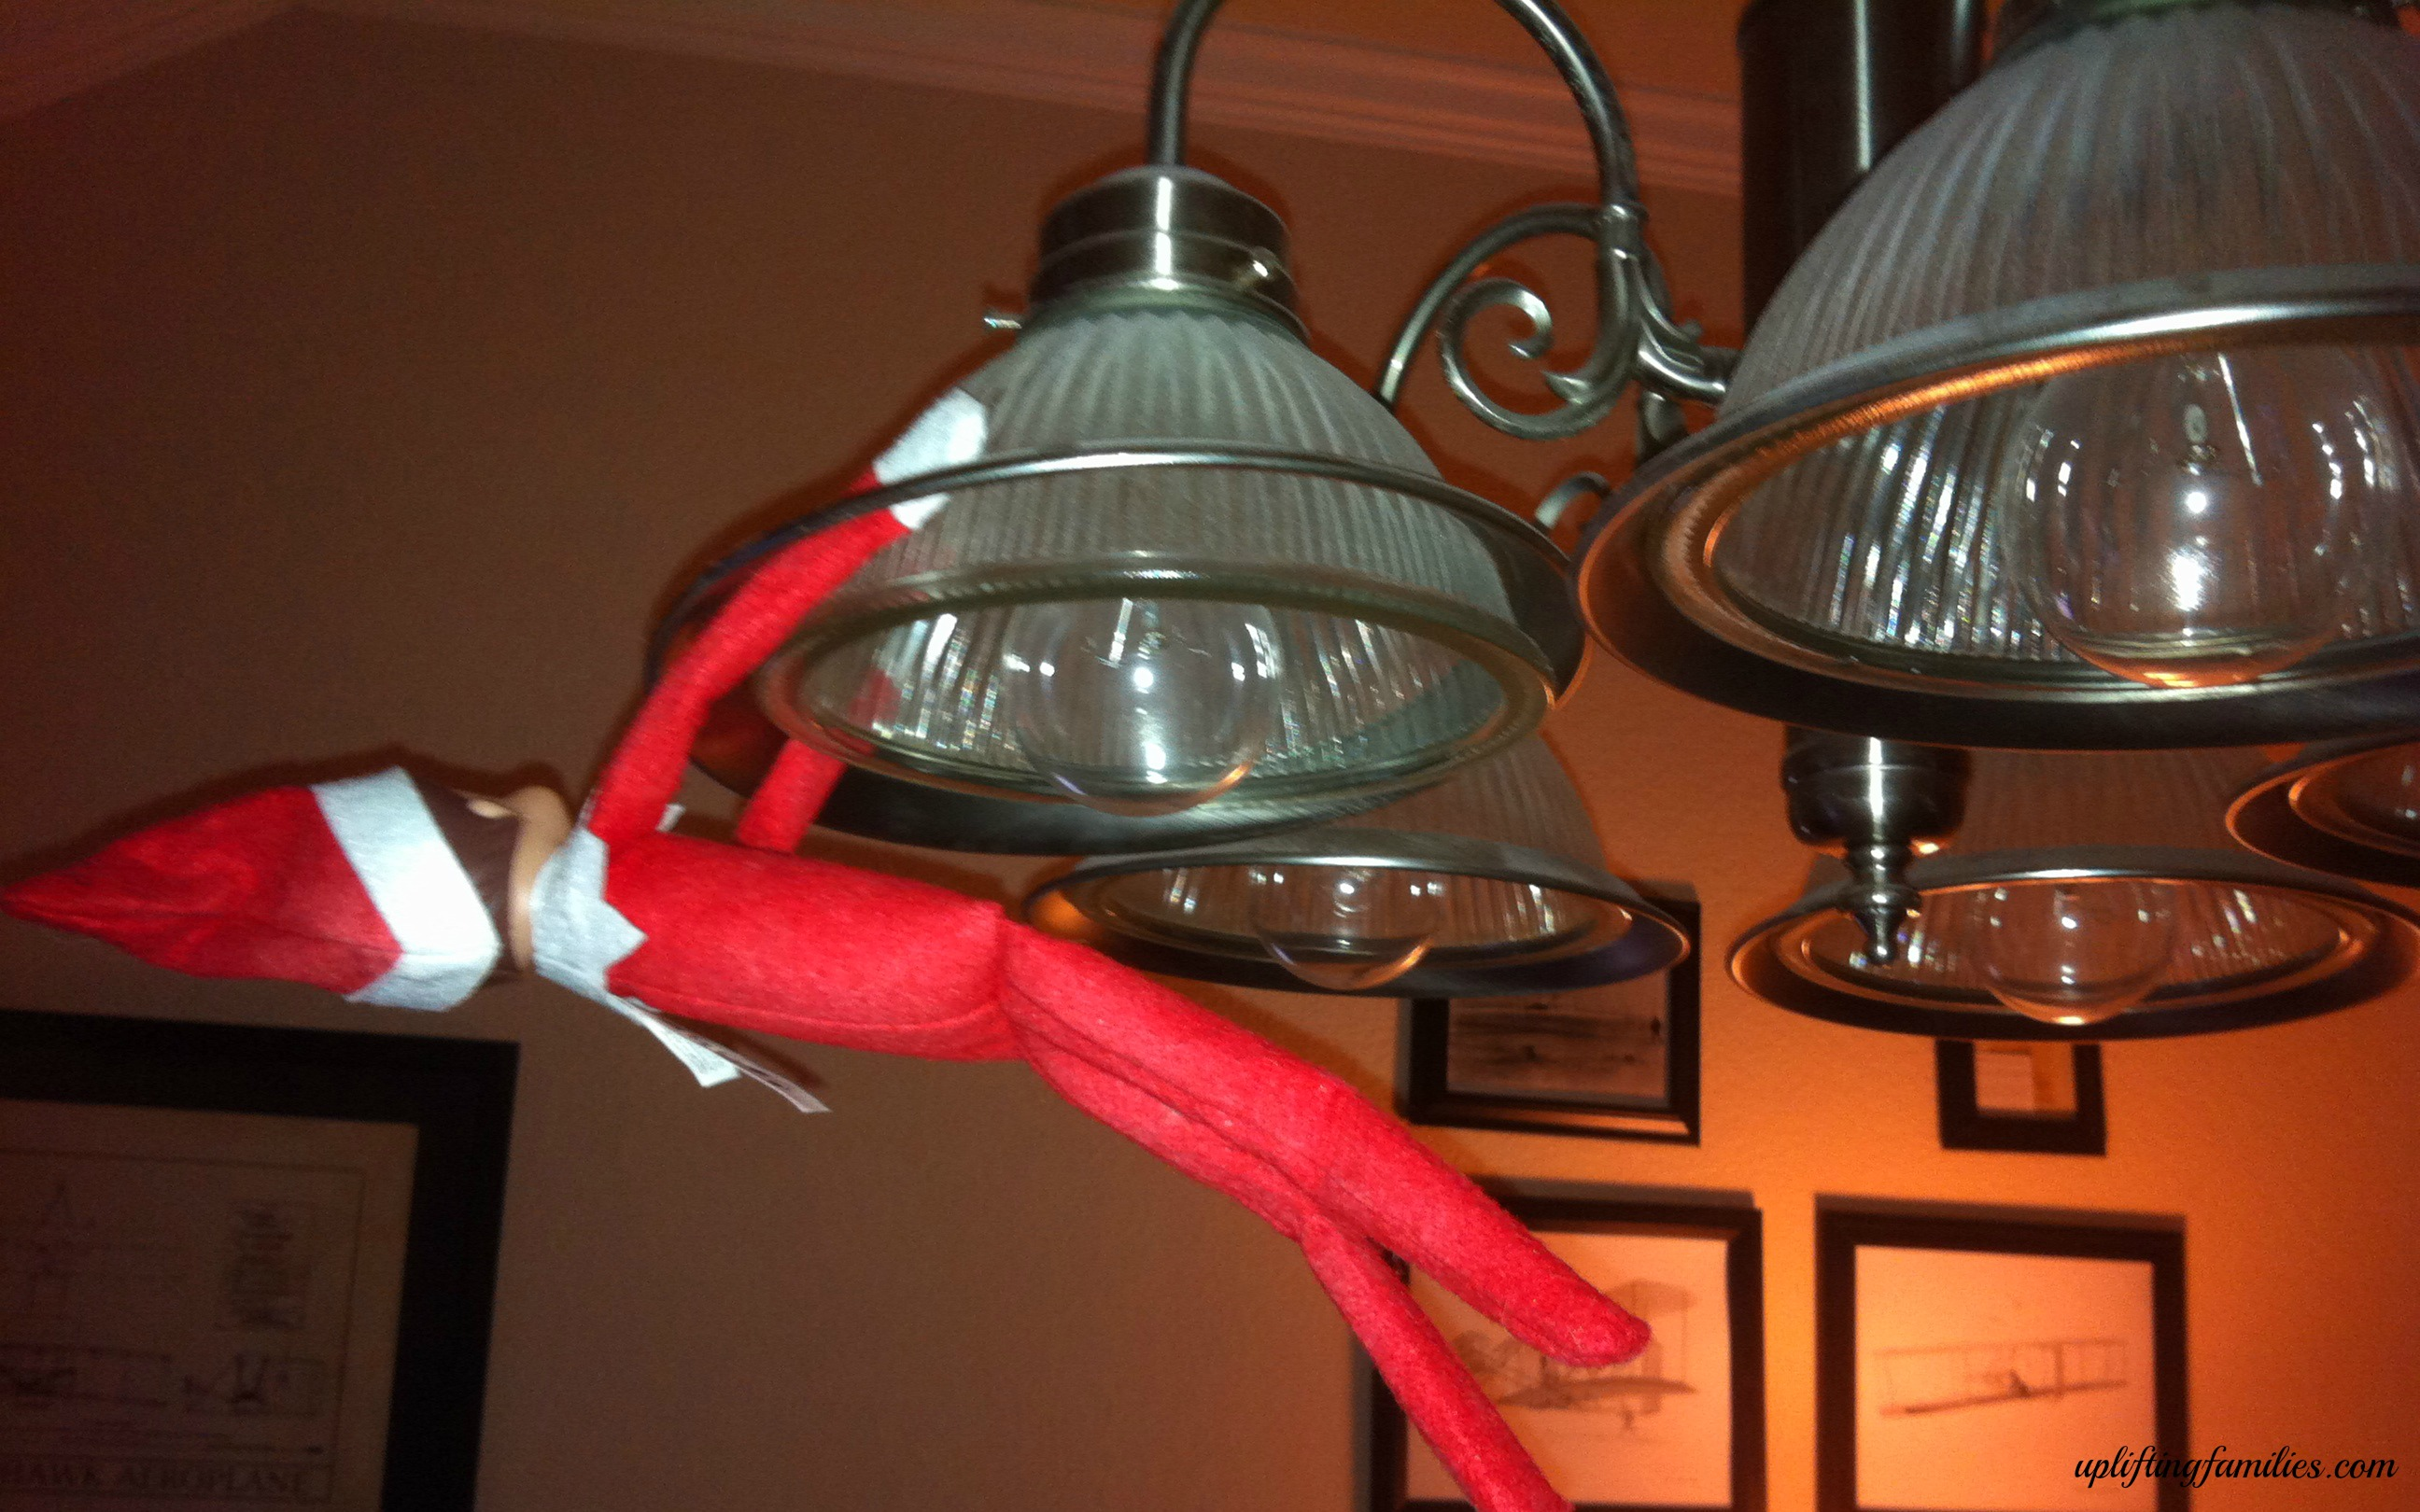 Rascal Was Hanging on the Chandelier this Morning